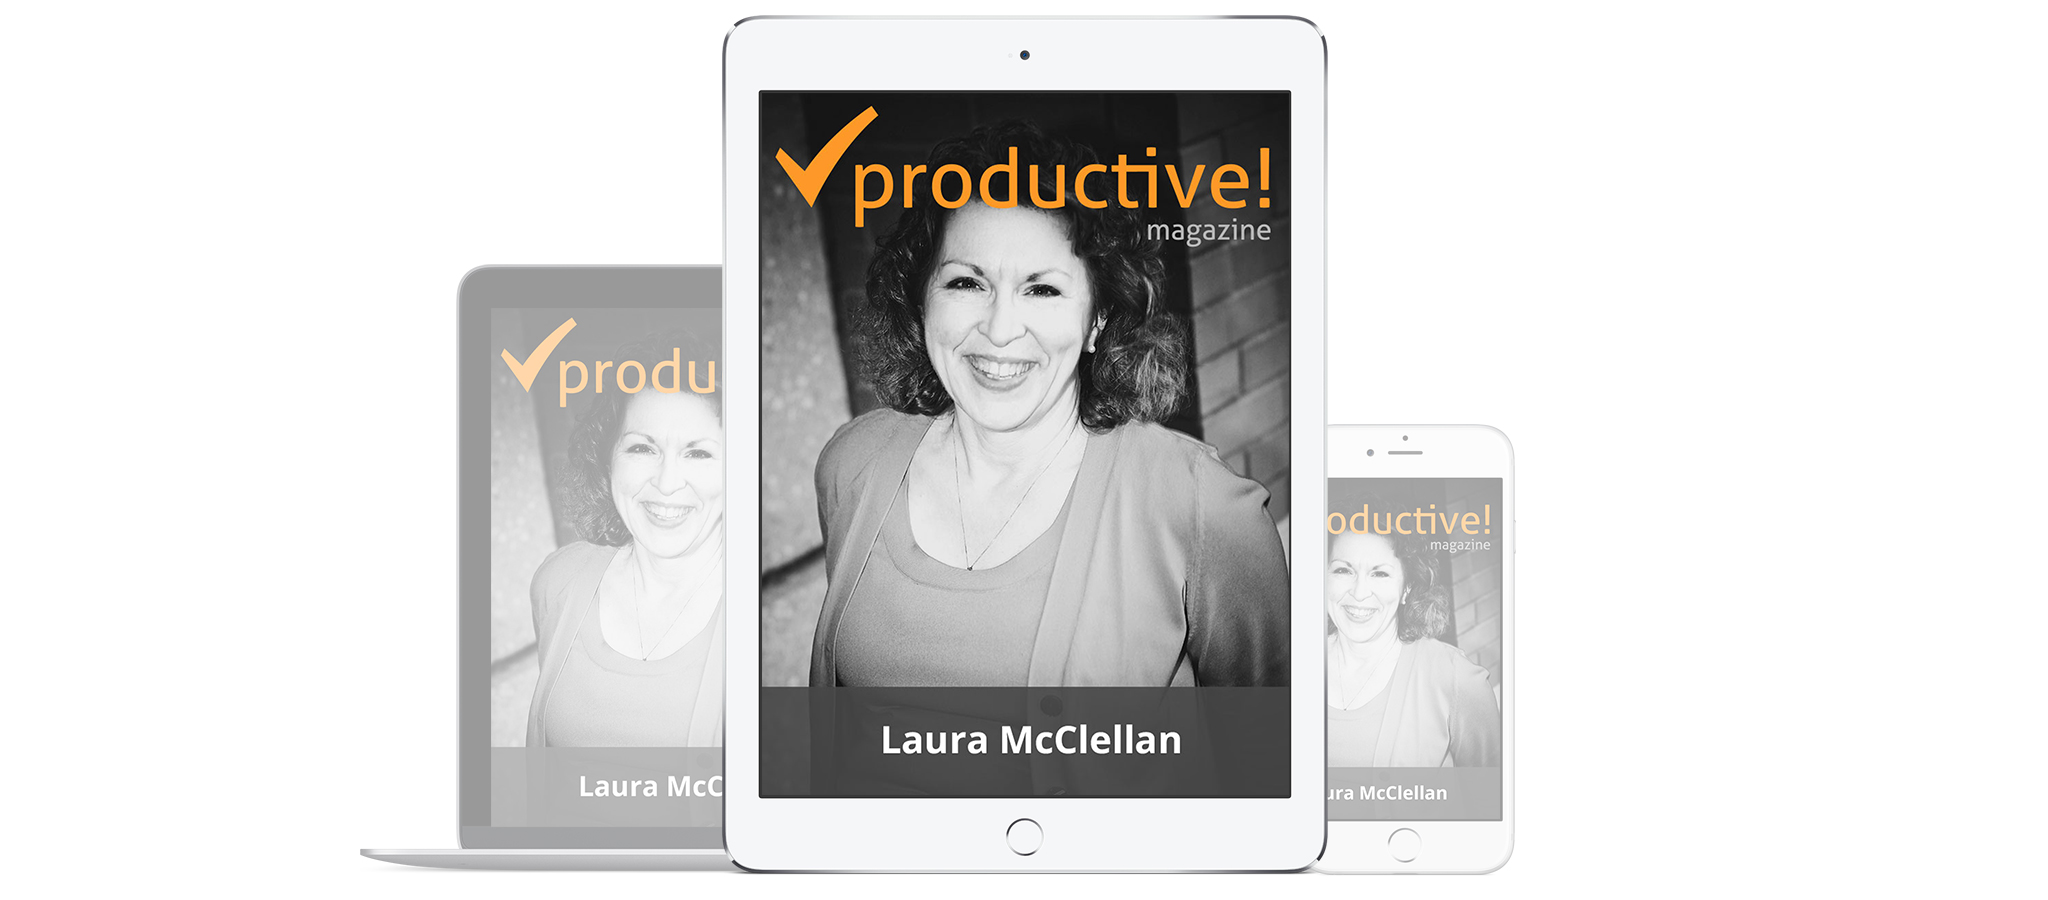 №33 with Laura McClellan